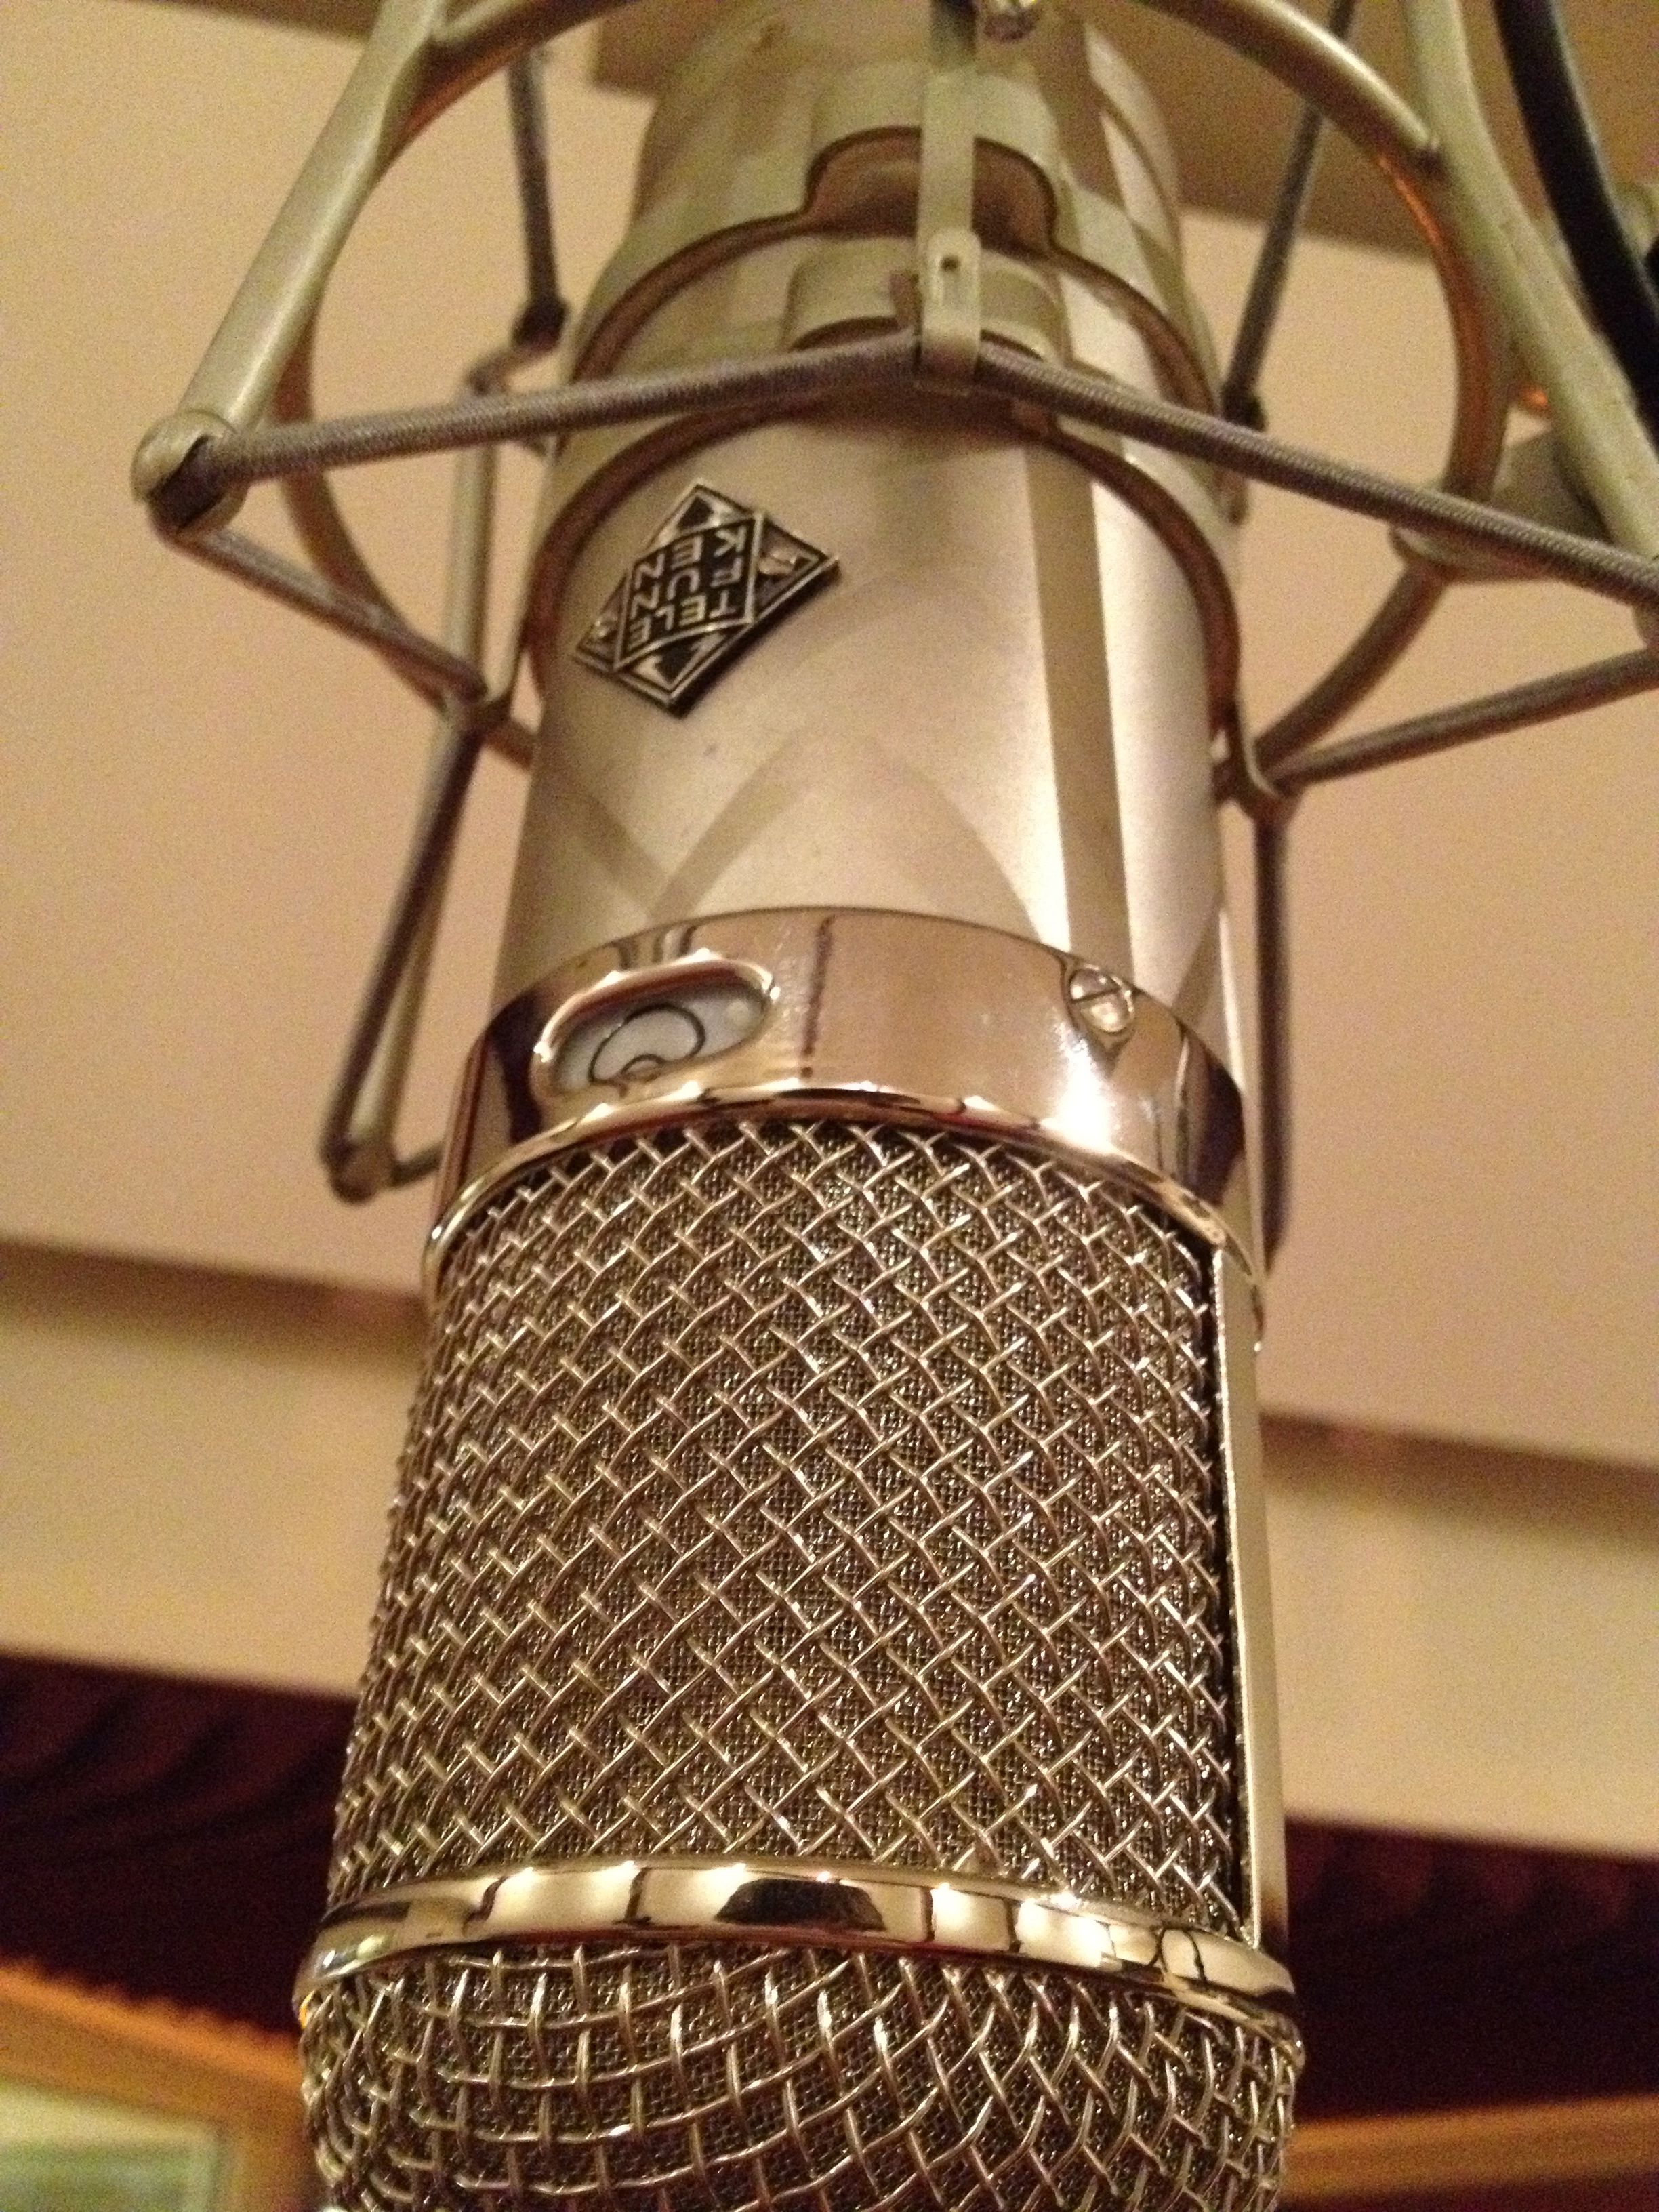 Neumann U47